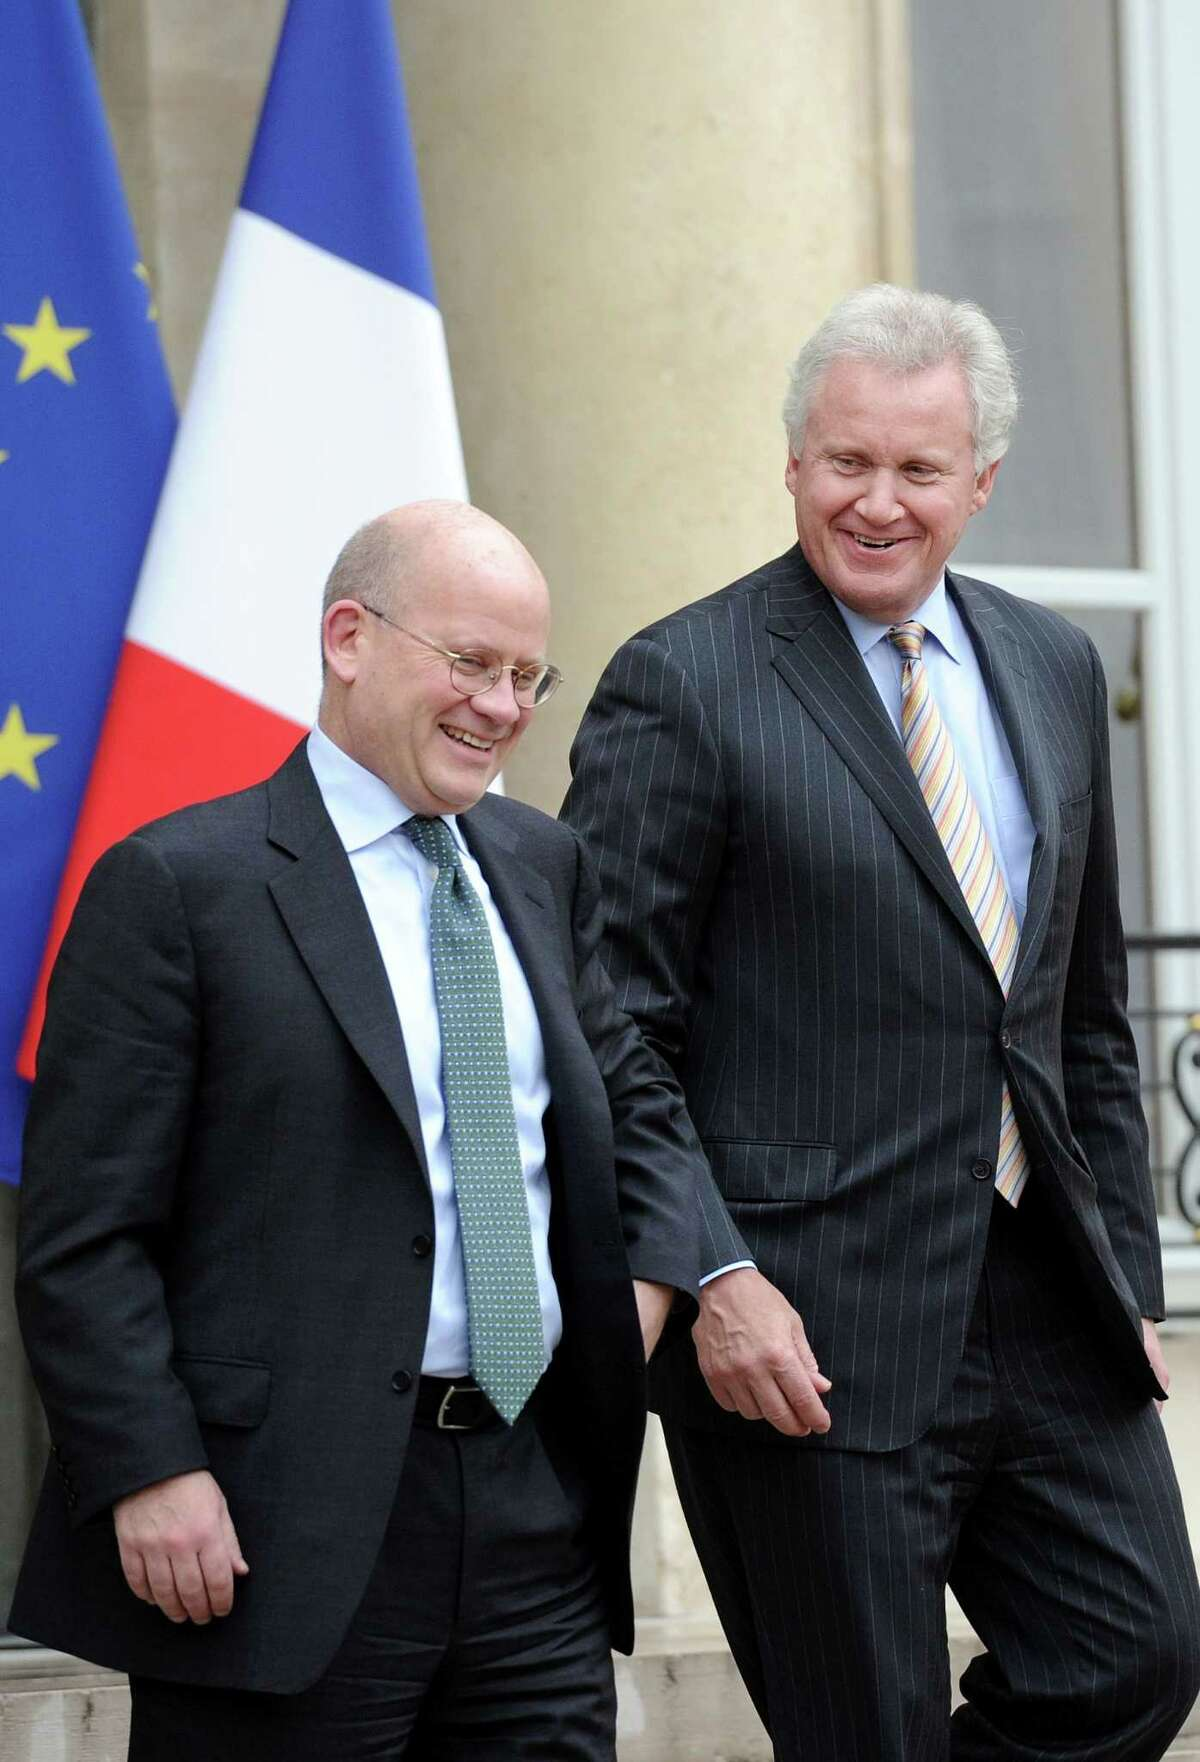 (FILES) This file photo taken on May 28, 2014 shows General Electric (GE) chief executive Jeffrey Immelt (R), flanked by Vice President, Corporate Business Development at GE, John Flannery leaving the Elysee Palace in Paris. General Electric on June 12, 2017, announced the departure of Immelt, who had made the risky bet of refocusing the US conglomerate on its industrial roots, particularly energy. Immelt, 61, who has served in the role since 2001, will hand his chief executive position over to Flannery on August 1, the company said in a news release. (STEPHANE DE SAKUTIN/AFP/Getty Images)